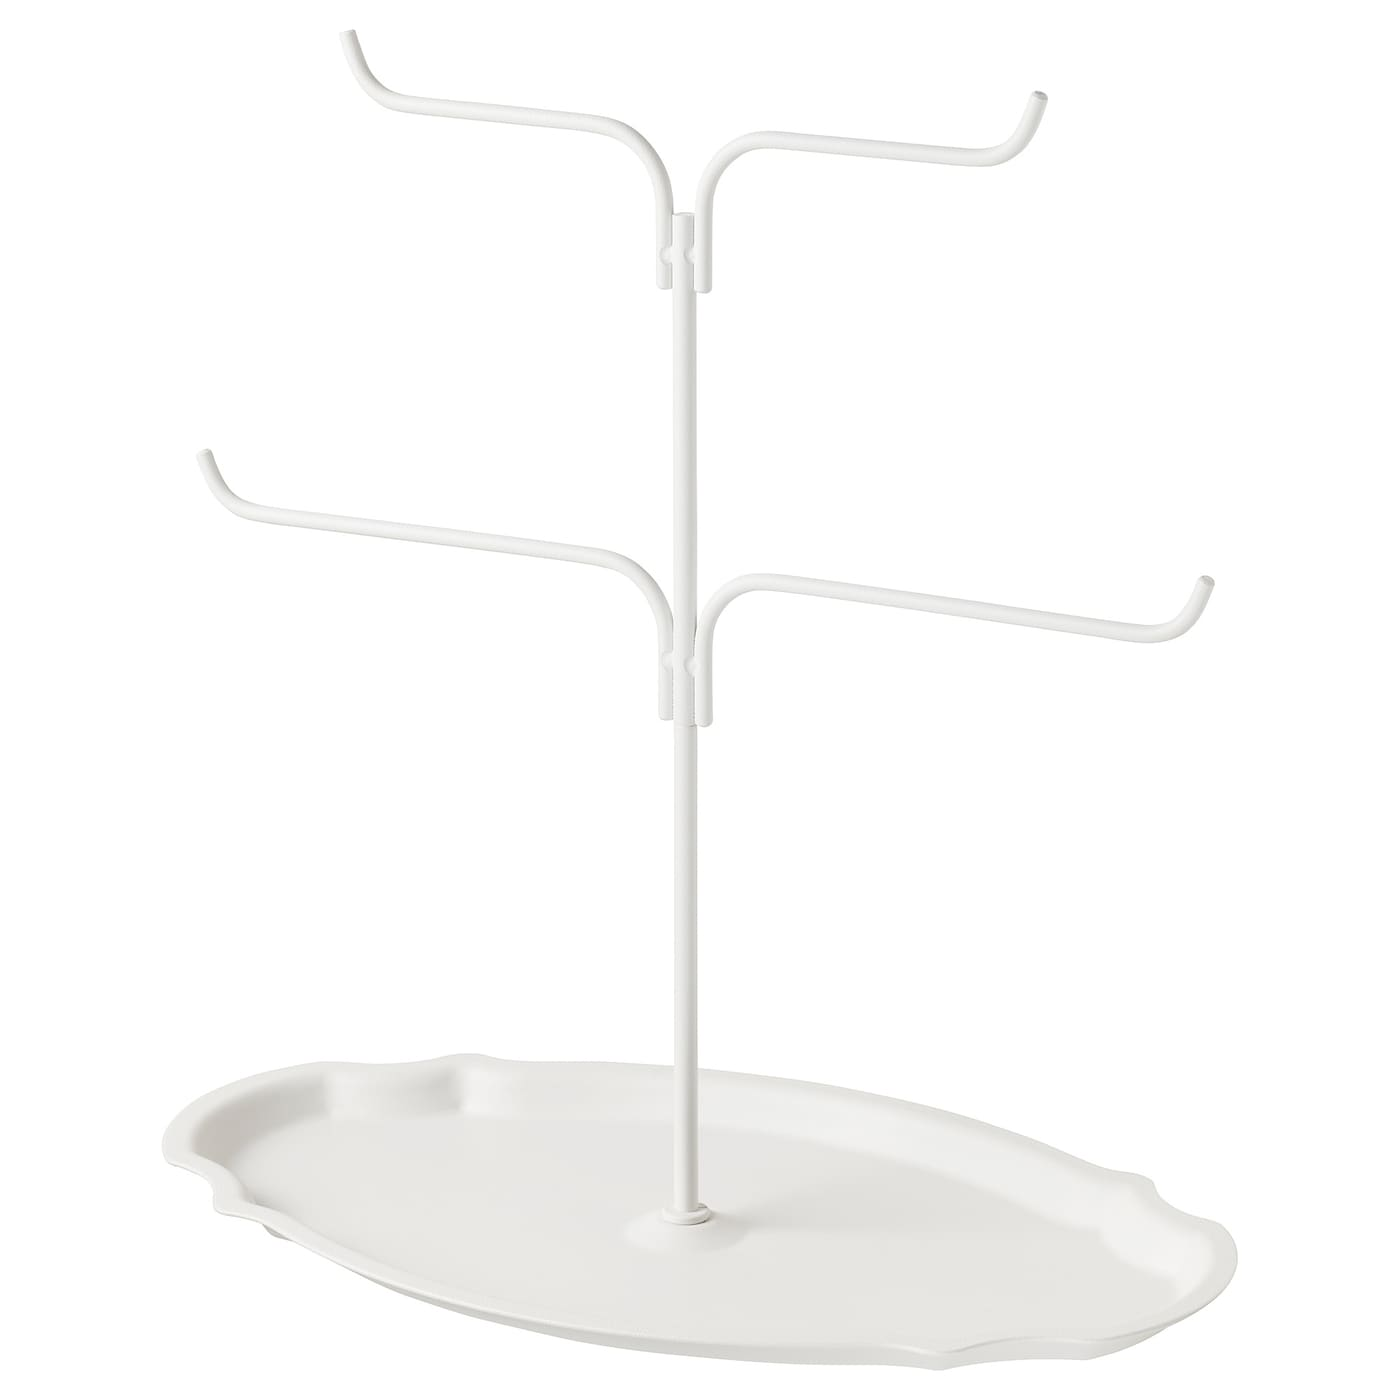 IKEA VINTER 2018 soporte decorativo